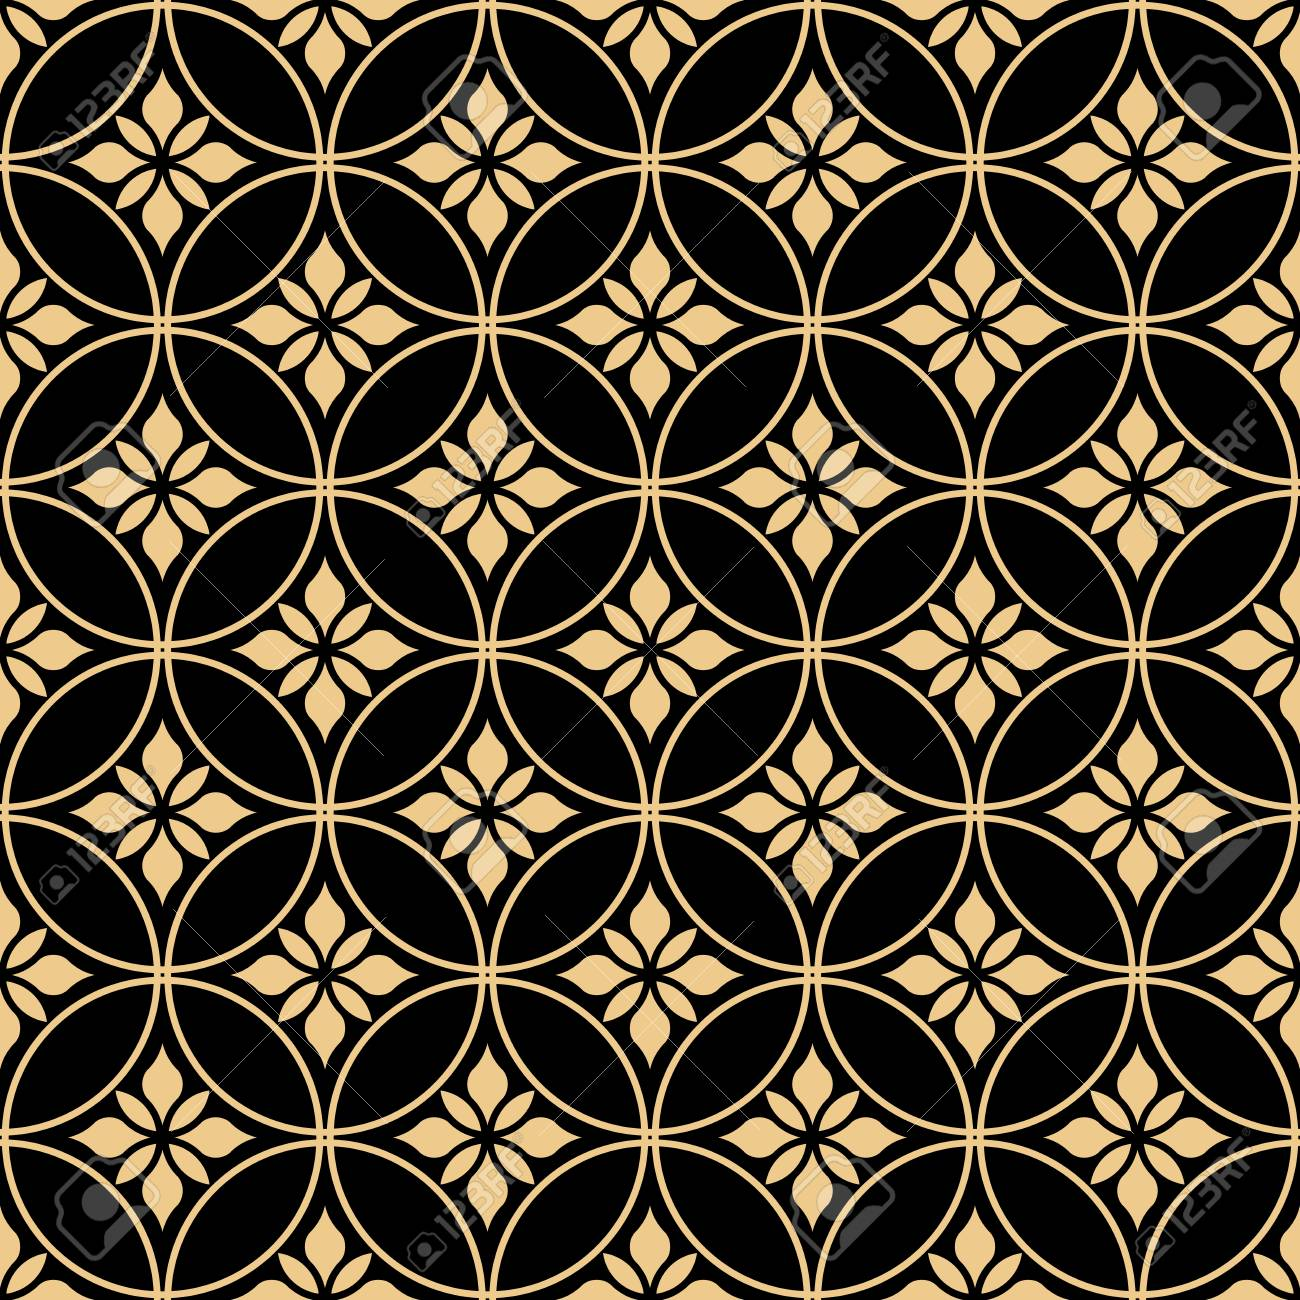 Flower Geometric Pattern Seamless Vector Background Gold And